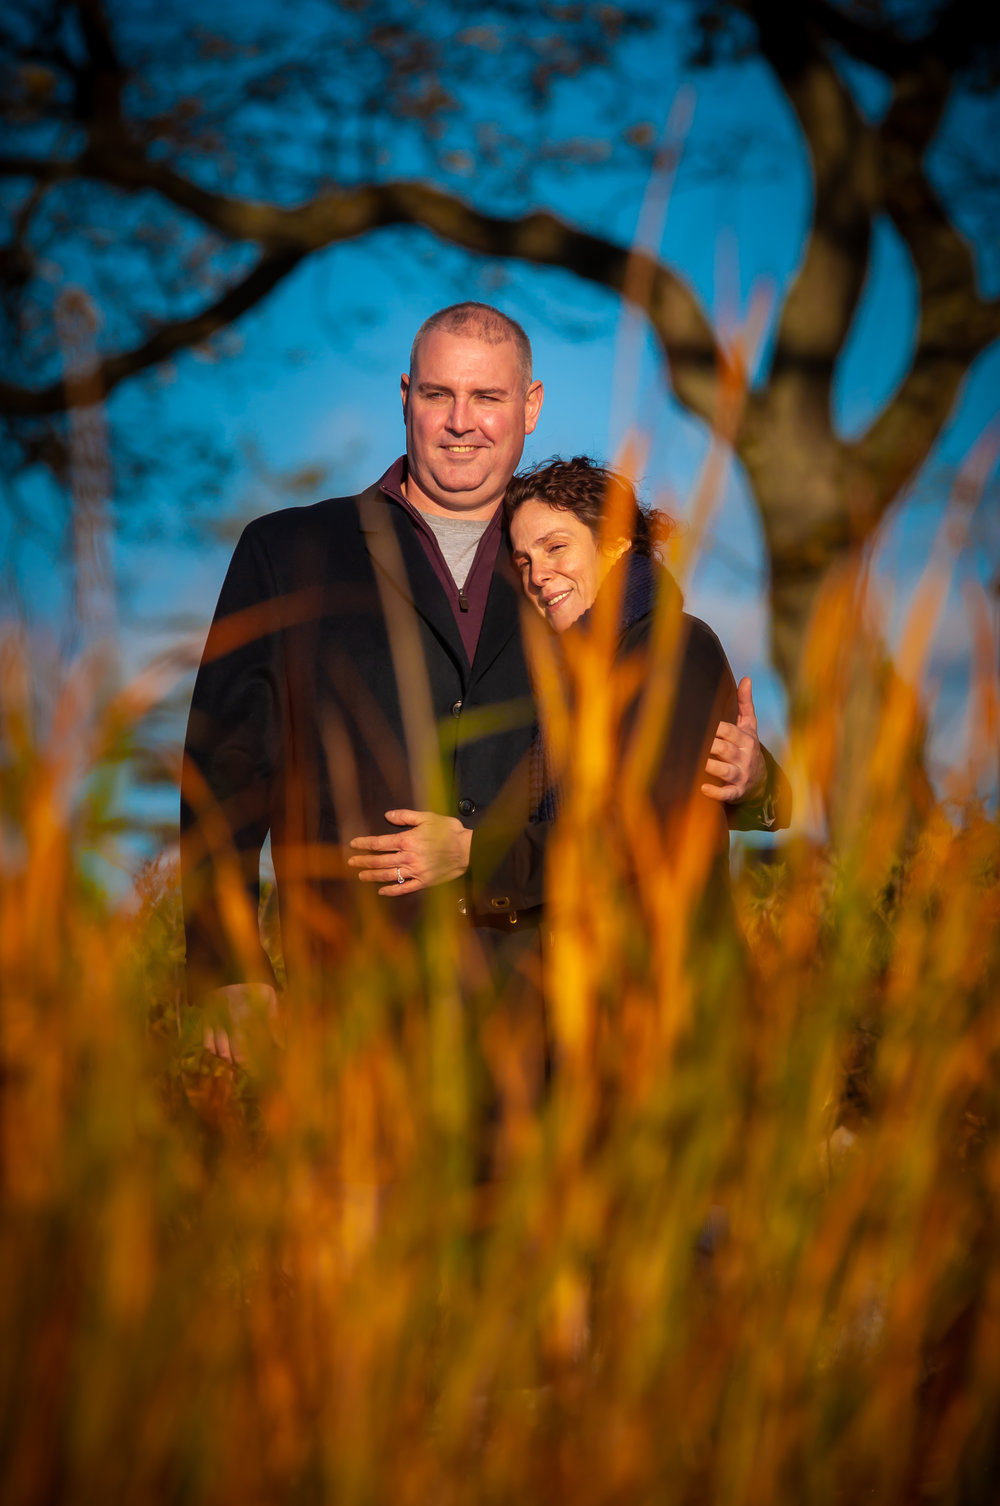 FIneArt_CarrieAnneGonzalez_NYPhotography_CarrieWestonStudios_Portrait_Engagement-5190.jpg